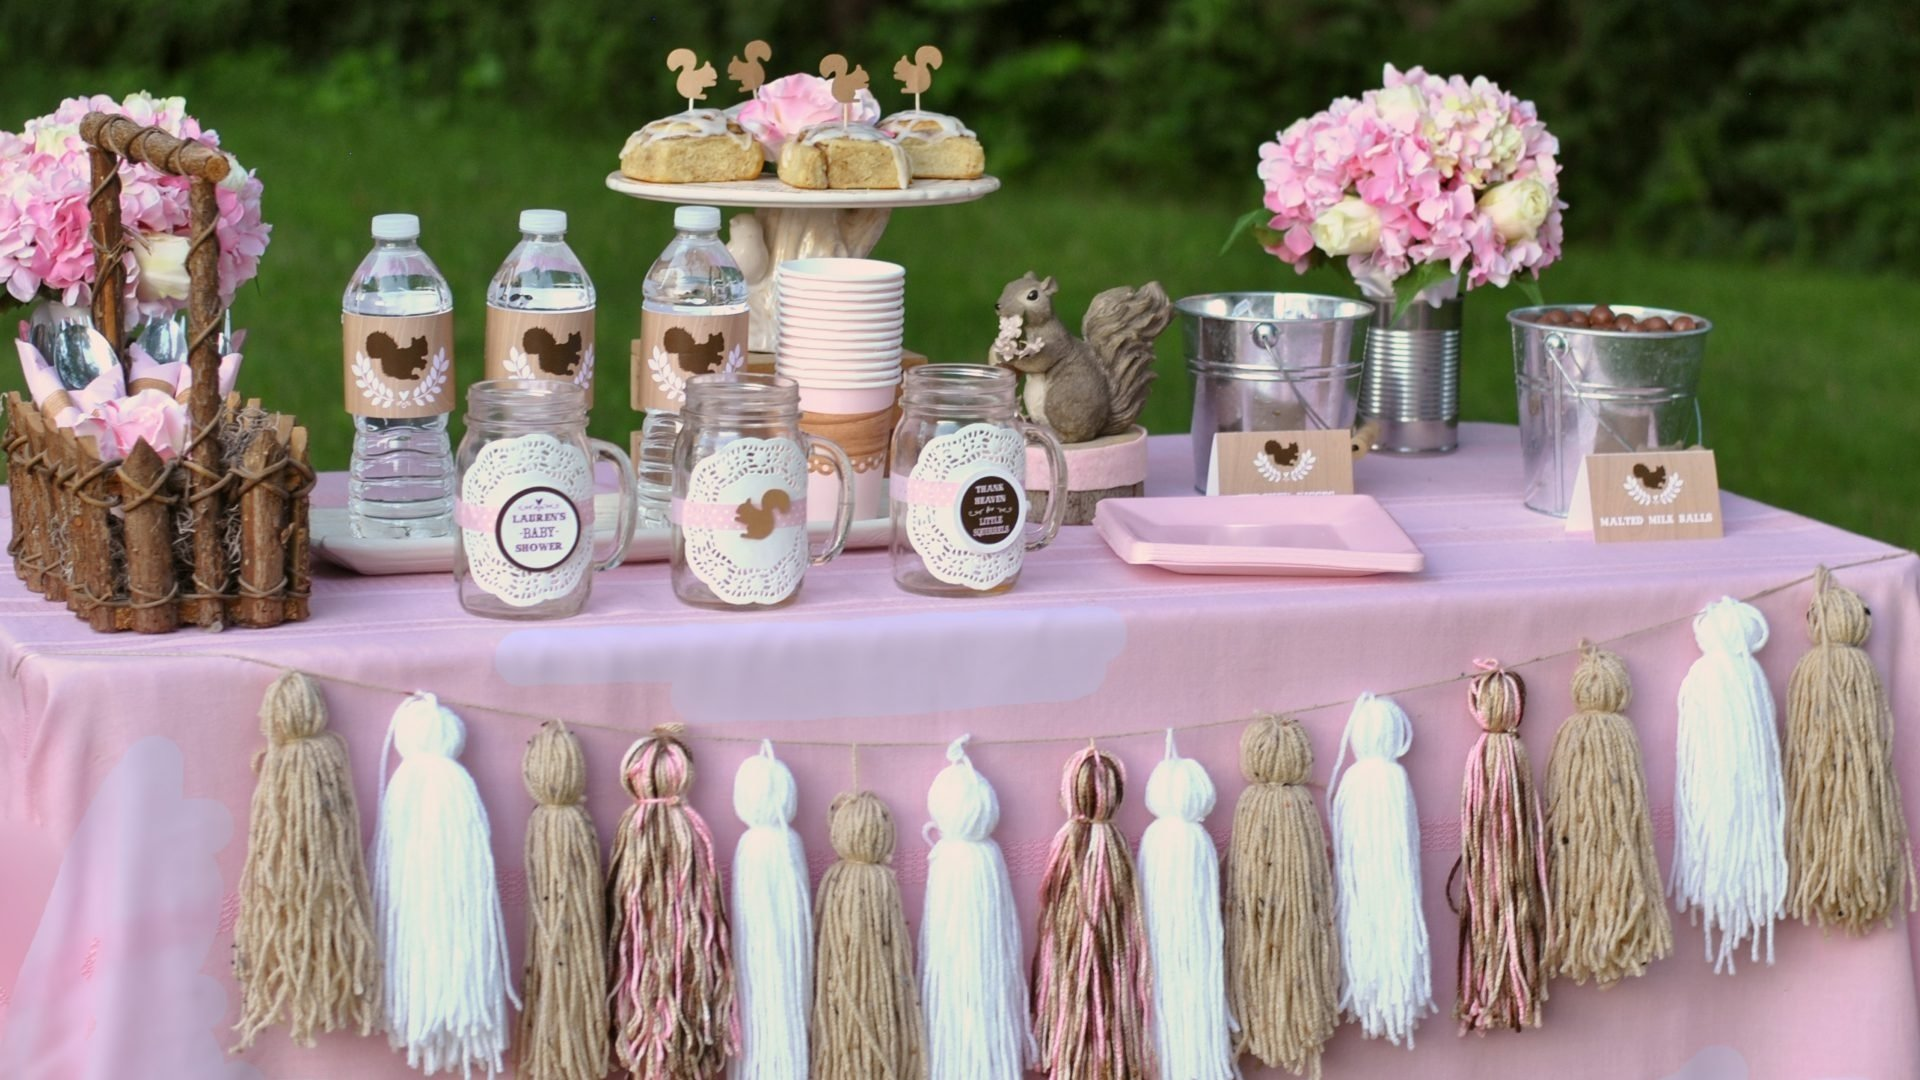 10 Nice Baby Shower Ideas For Girls Decorations ideas marvelous babyhower decorations centerpieces for the tables